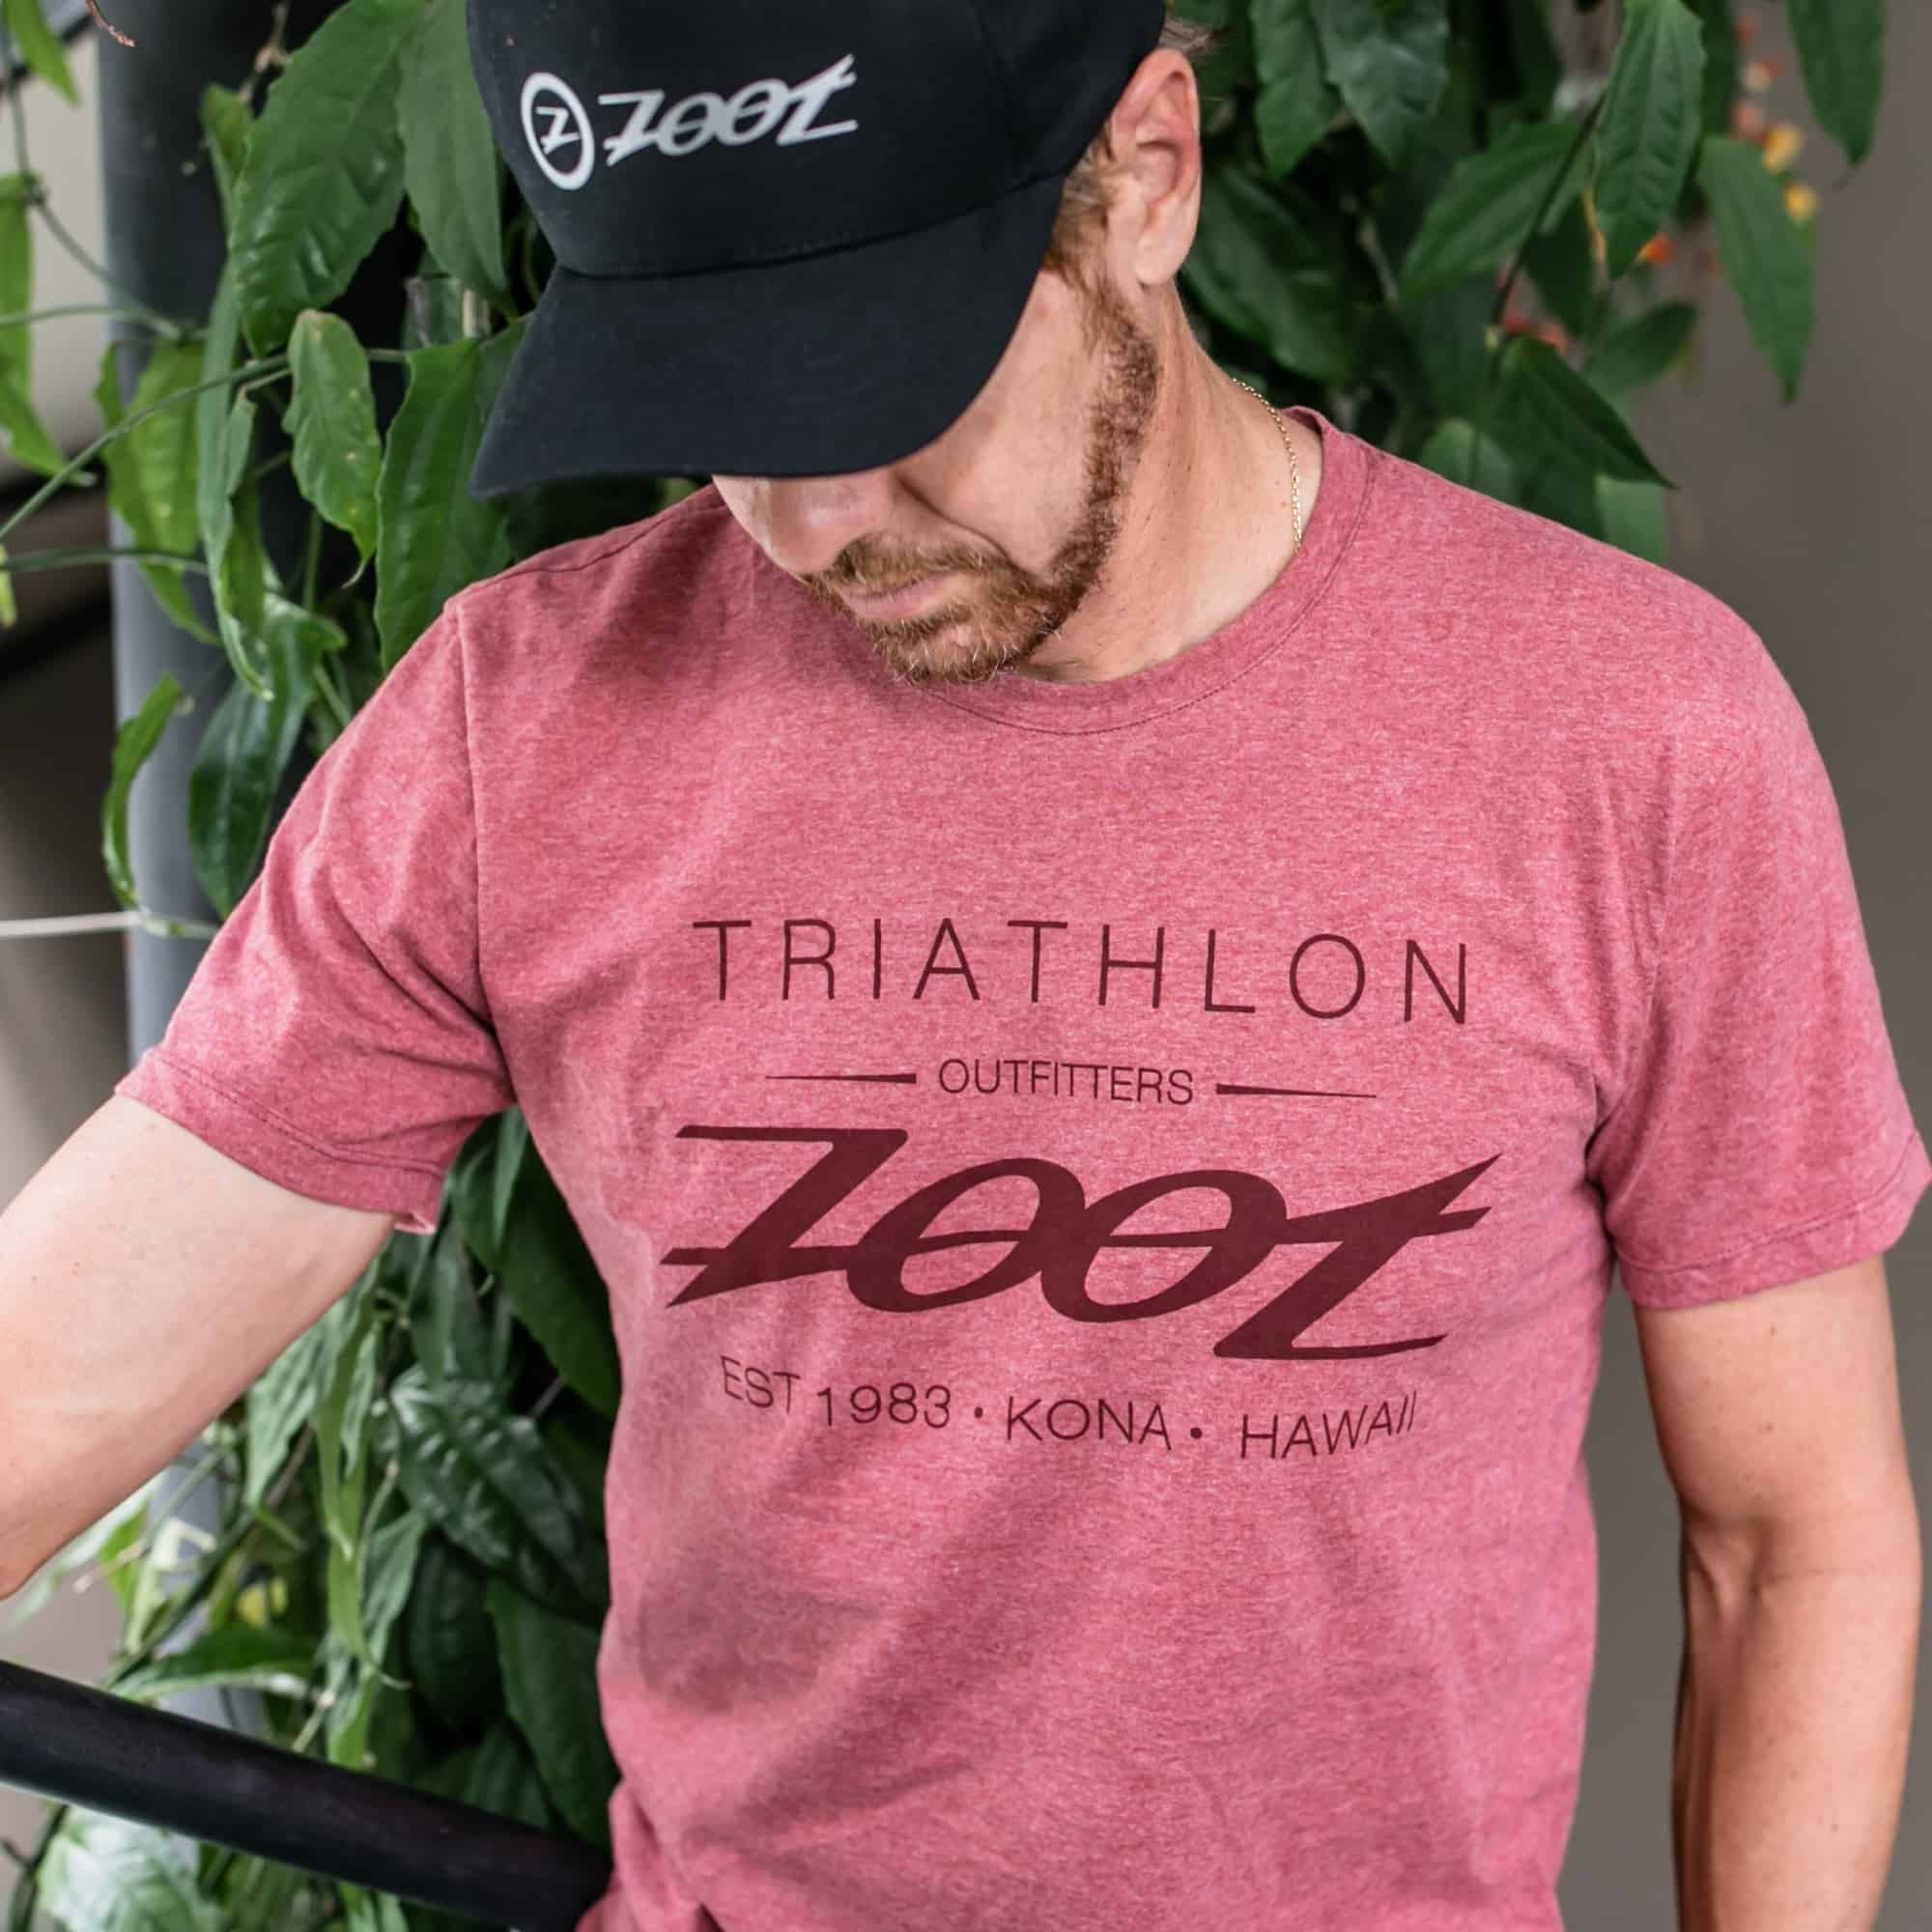 POLERA ZOOT TRIATHLON OUTFITTERS 1983 HI HOMBRE